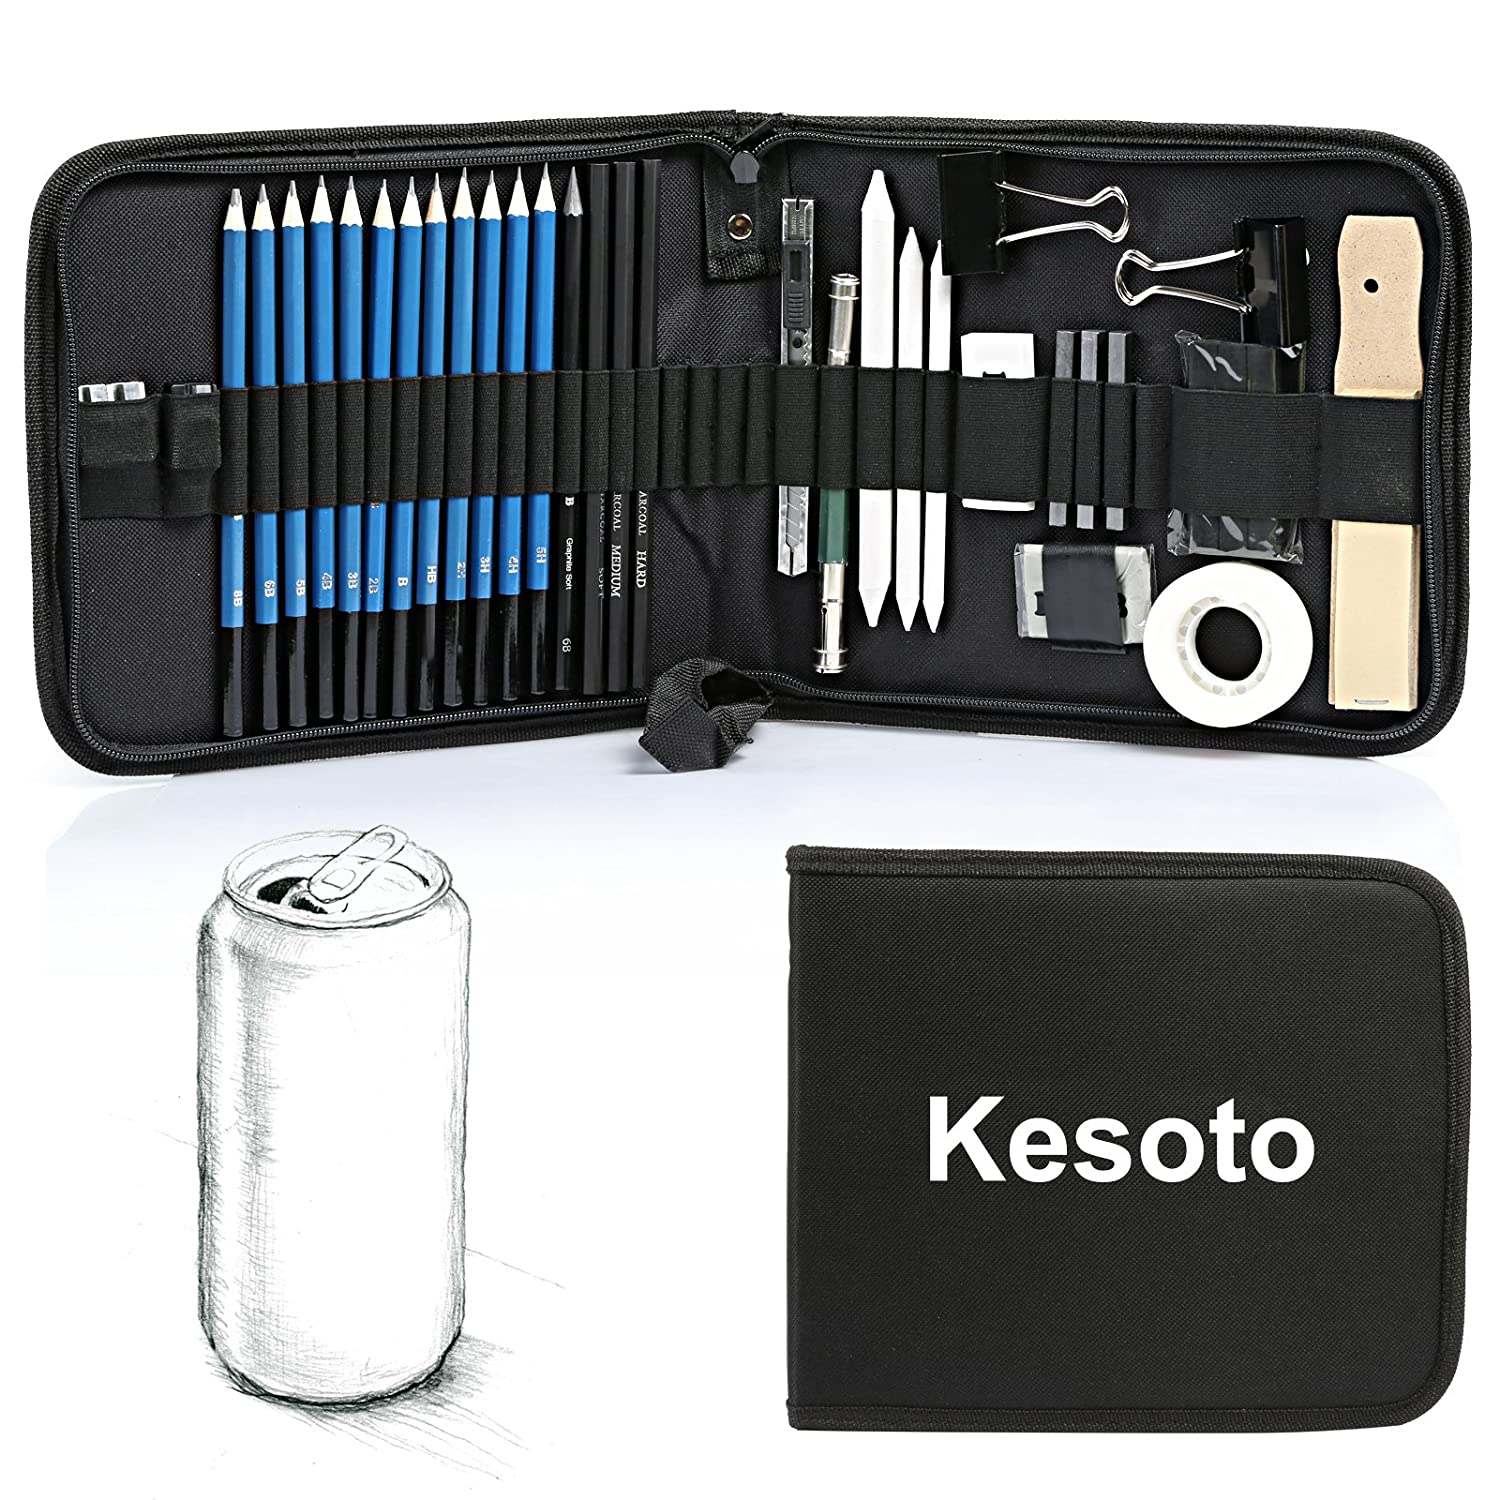 Kesoto 35 Pieces Art Supplies Drawing and Sketching Pencils Set with Graphite & Charcoal Pencils, Sticks and Tools 4336947185